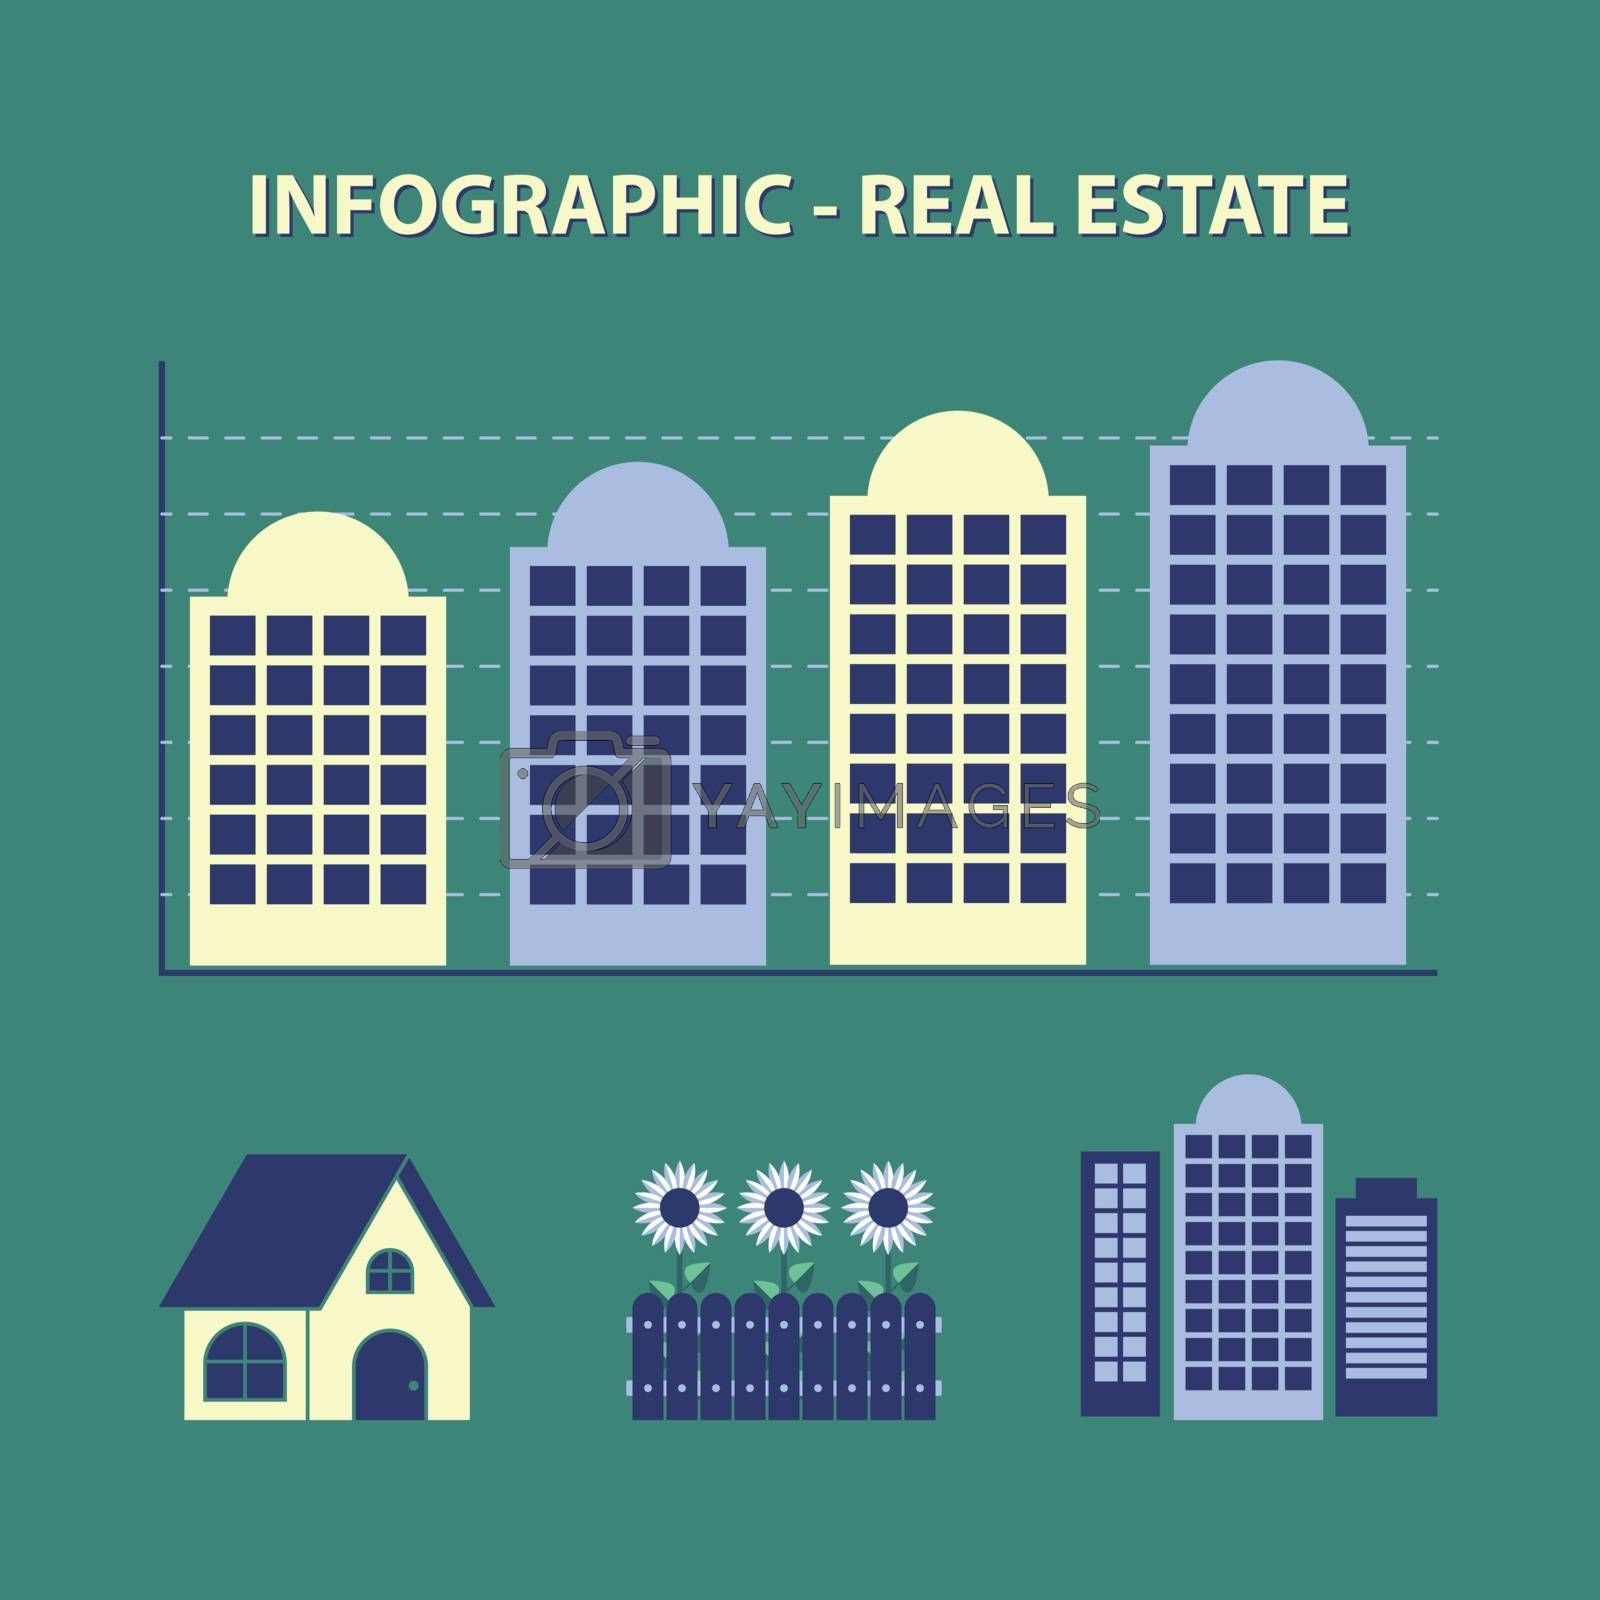 real estate infographic by Ardely